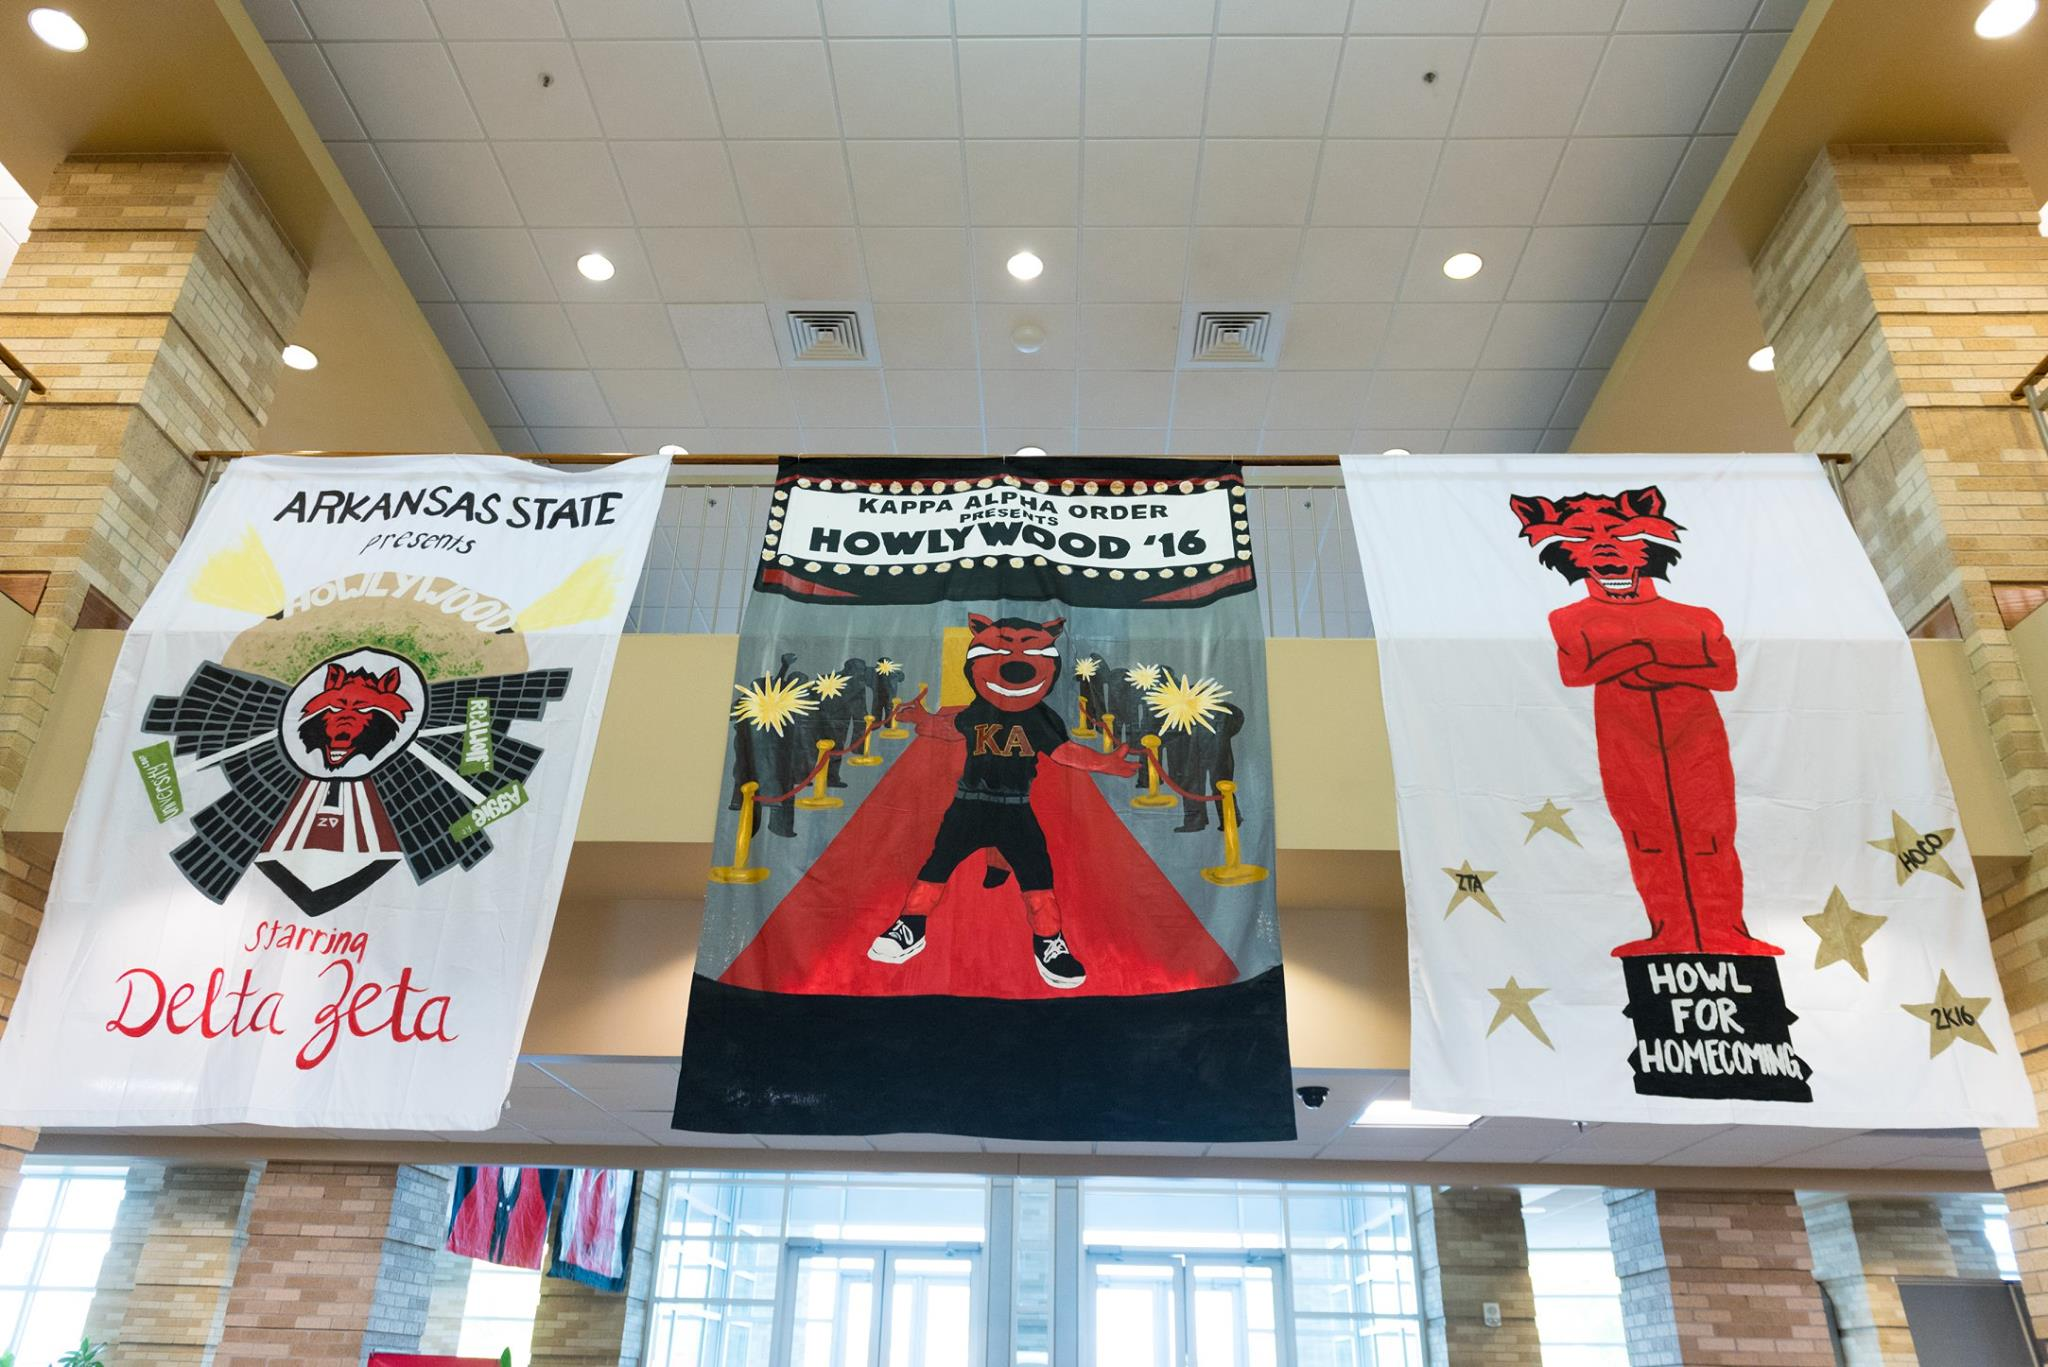 A few of the banners A-State student organizations submitted for the 2017 A-State Homecoming Banner Competition.